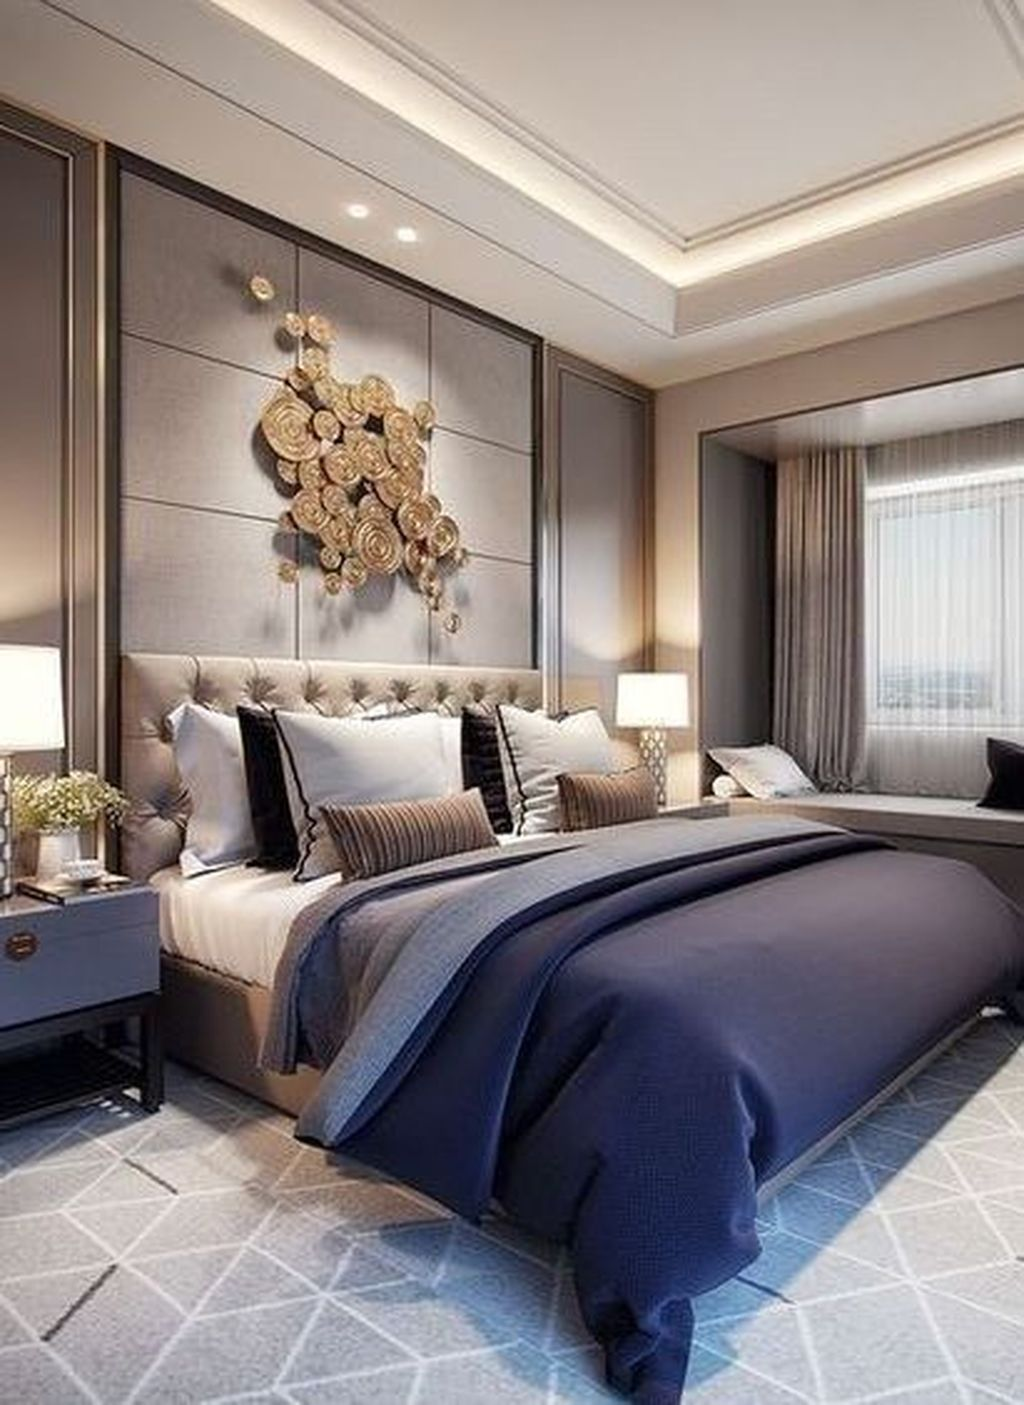 38 Best Master Bedroom Design Trends Ideas That You Need To Know In 2020 Luxury Bedroom Master Luxurious Bedrooms Luxury Bedroom Design